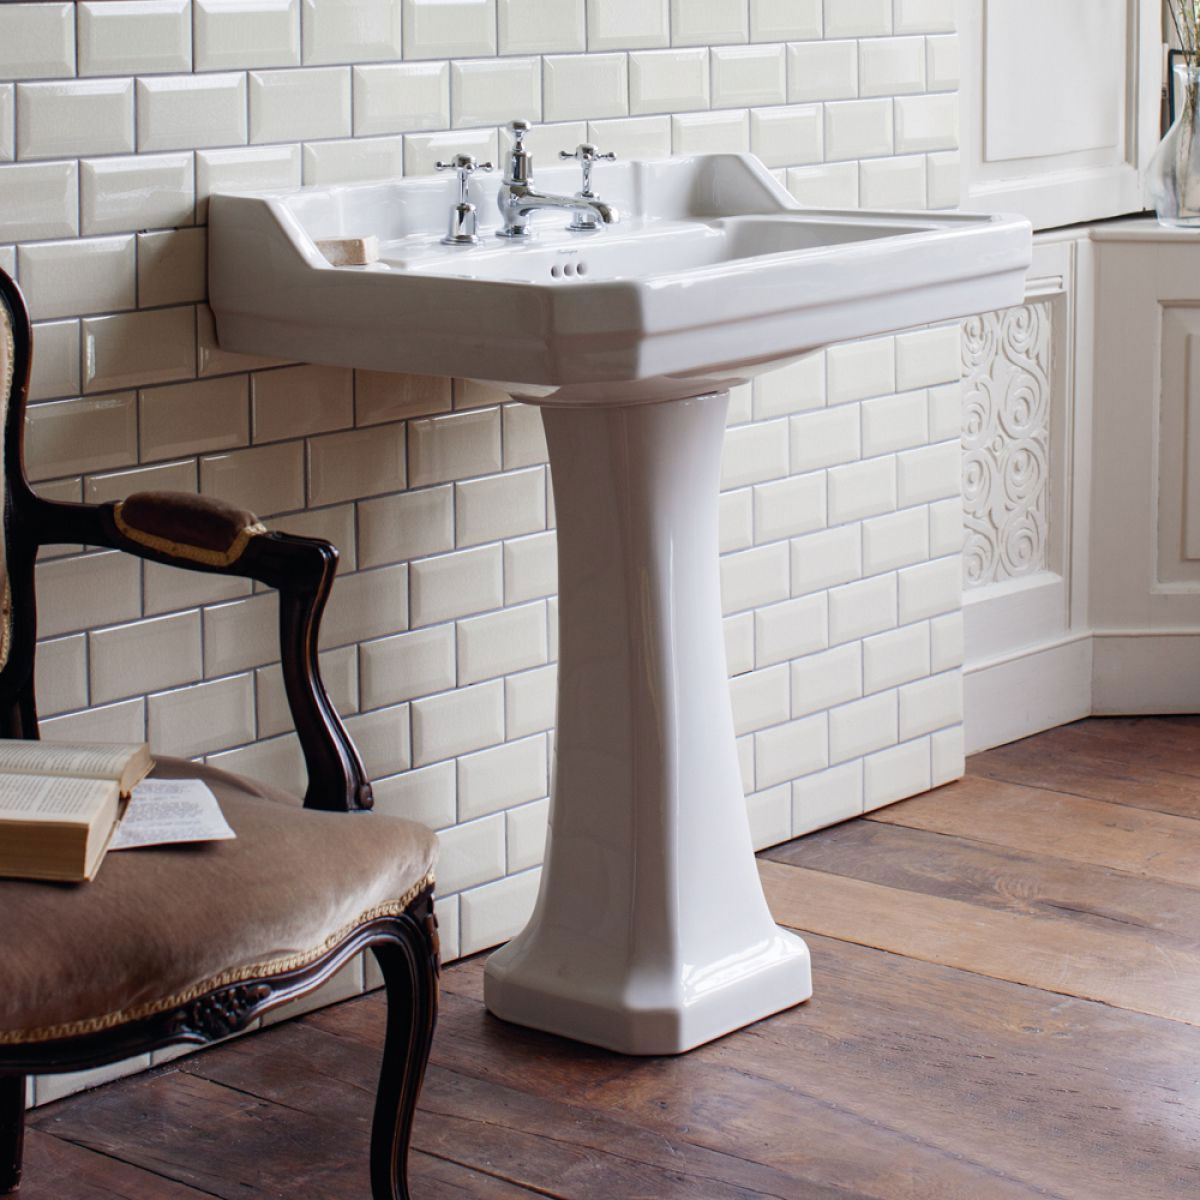 Burlington Edwardian Basin with Full Pedestal, 800mm Wide, 1 Tap Hole-0